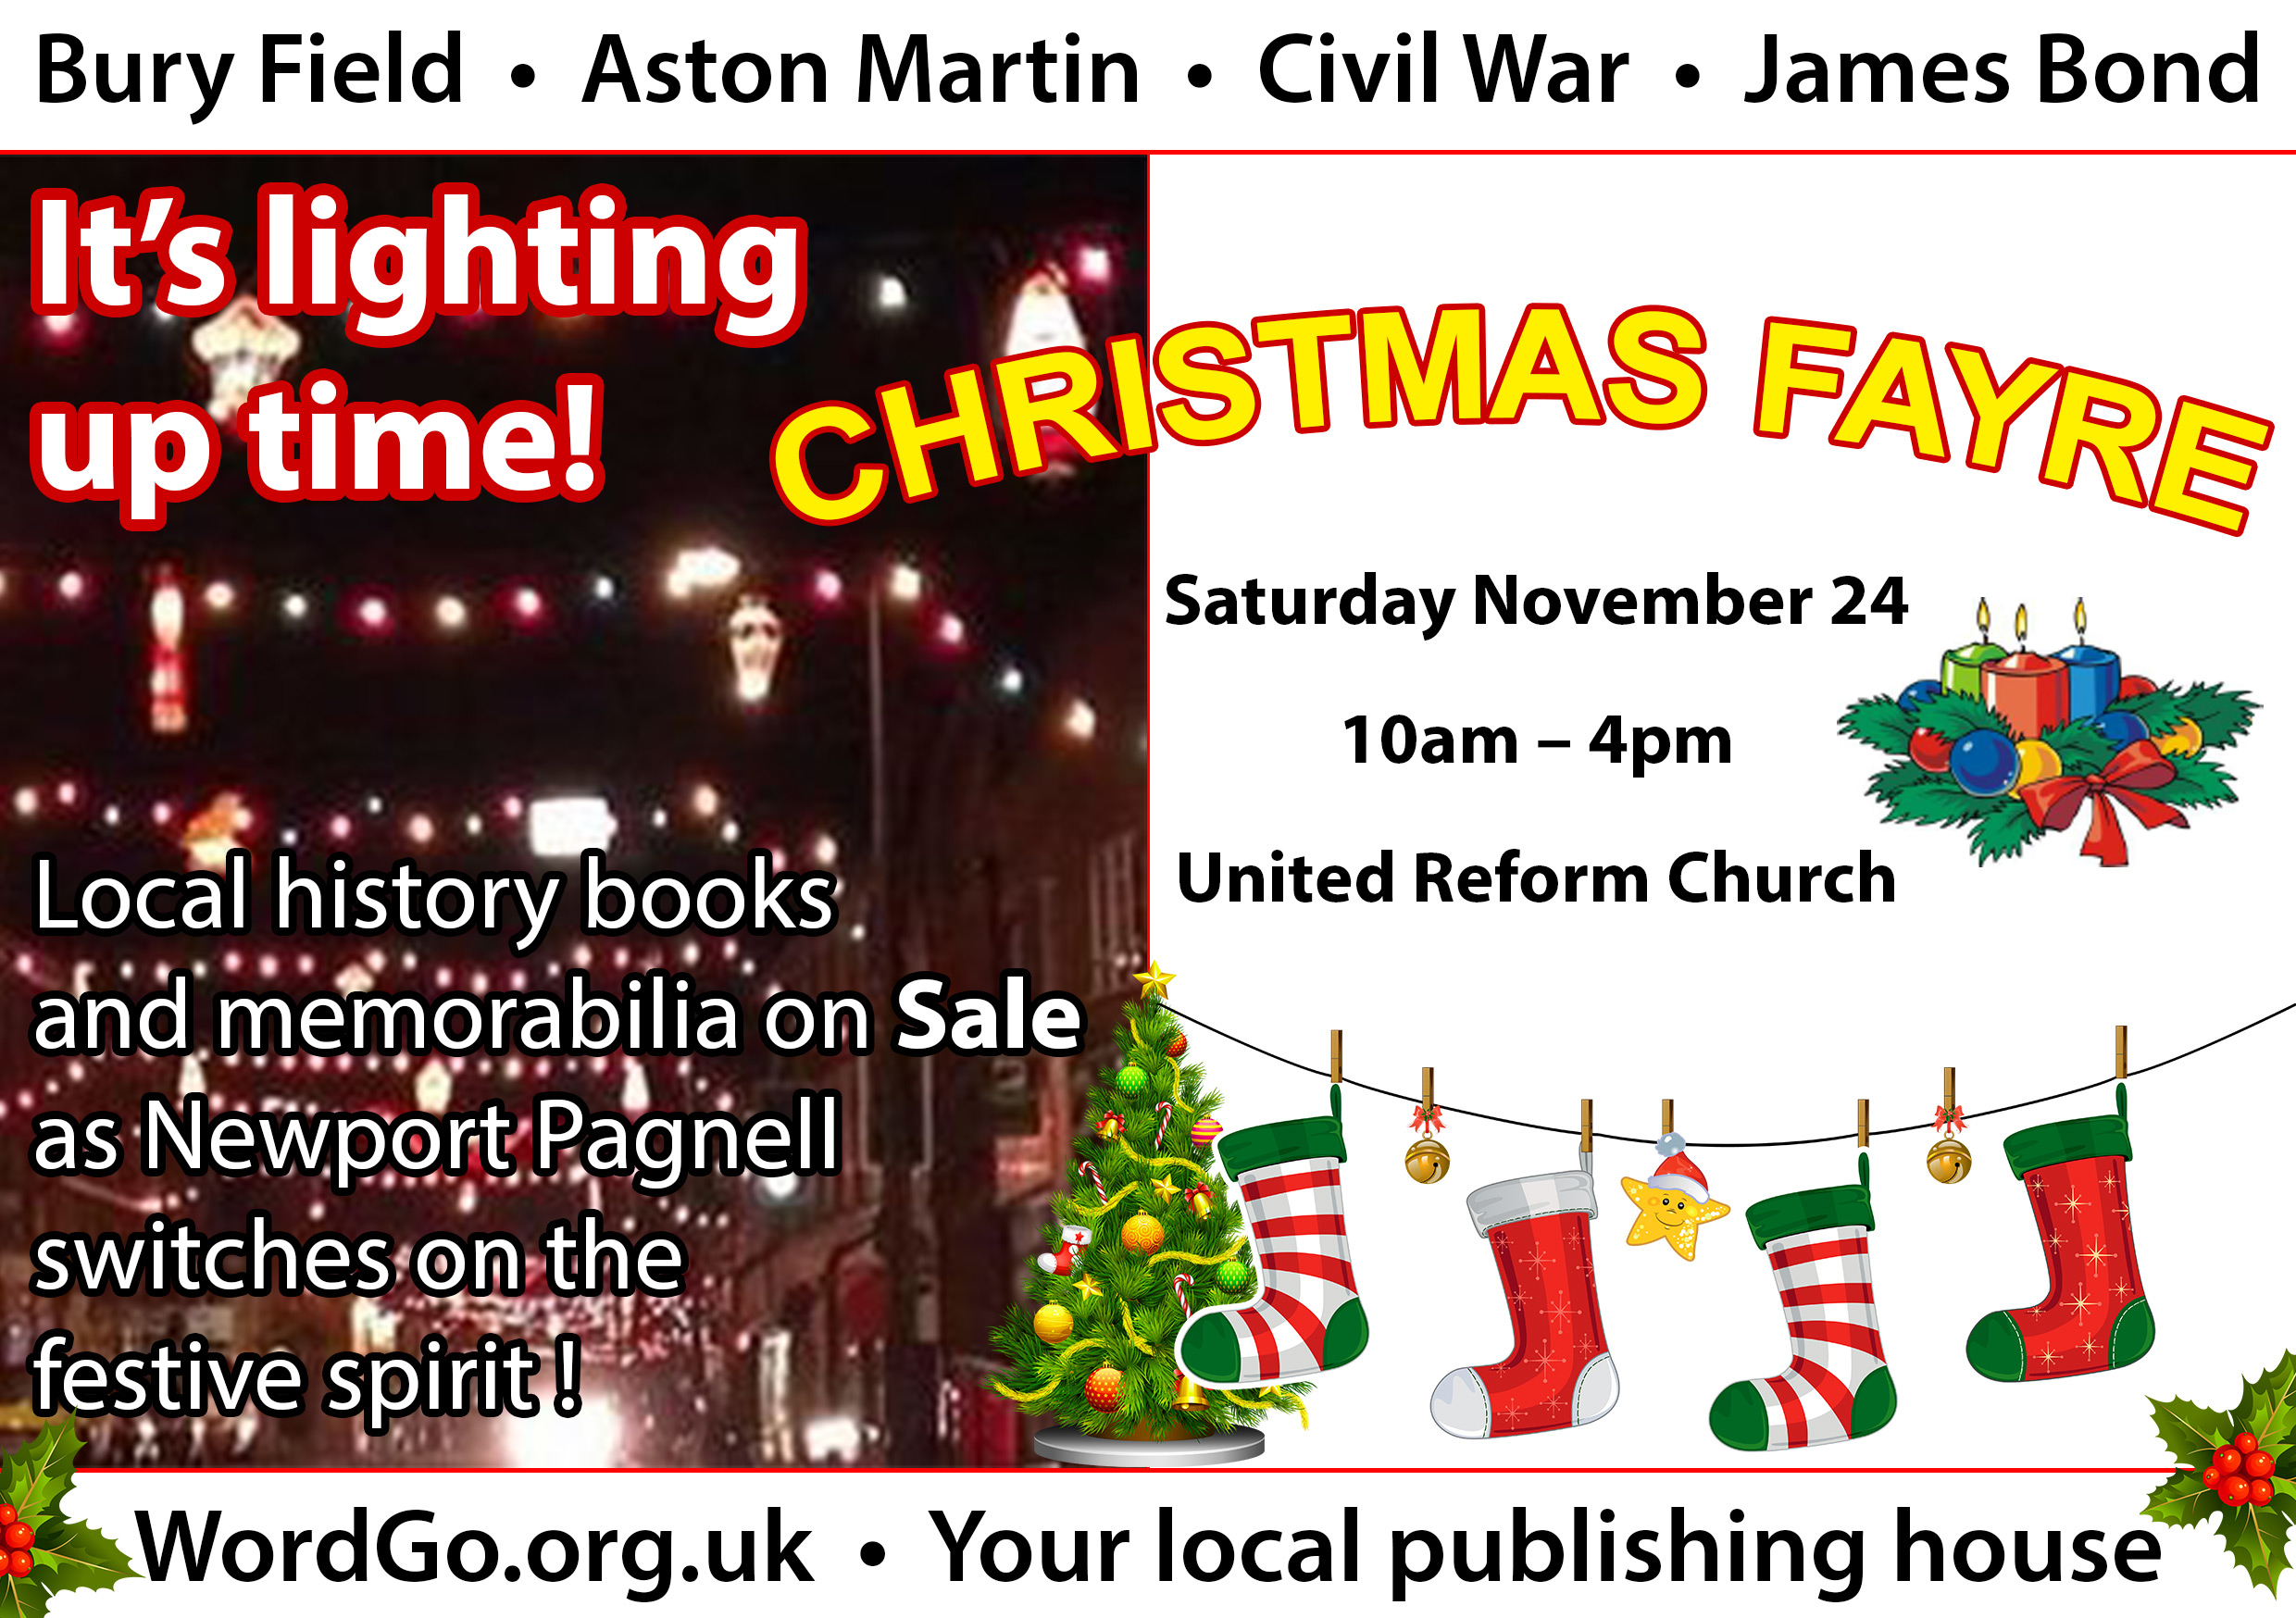 Newport Pagnell Christmas Fayre